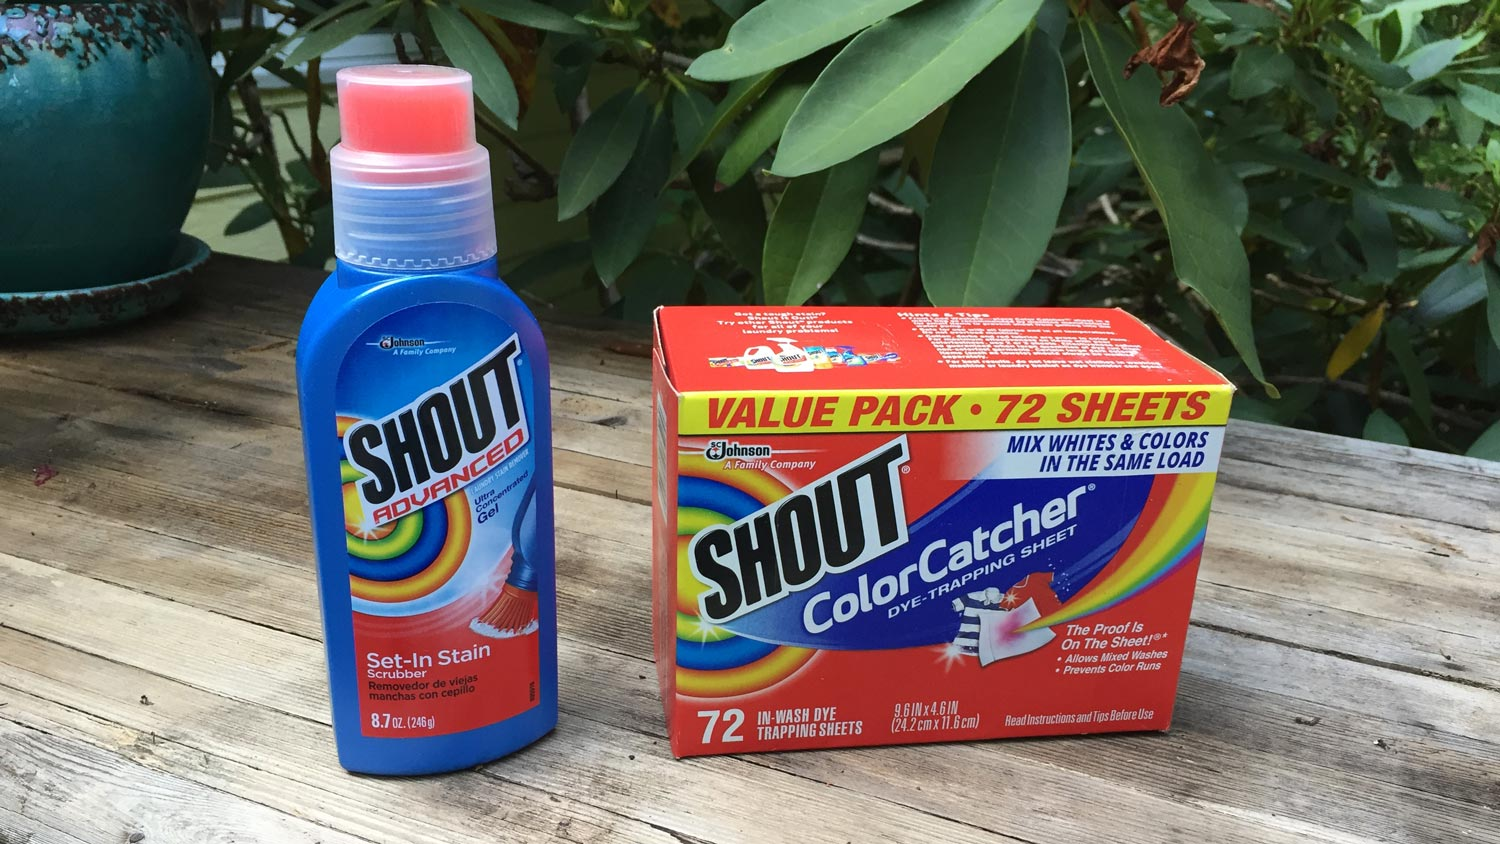 Laundry secrets from Shout®